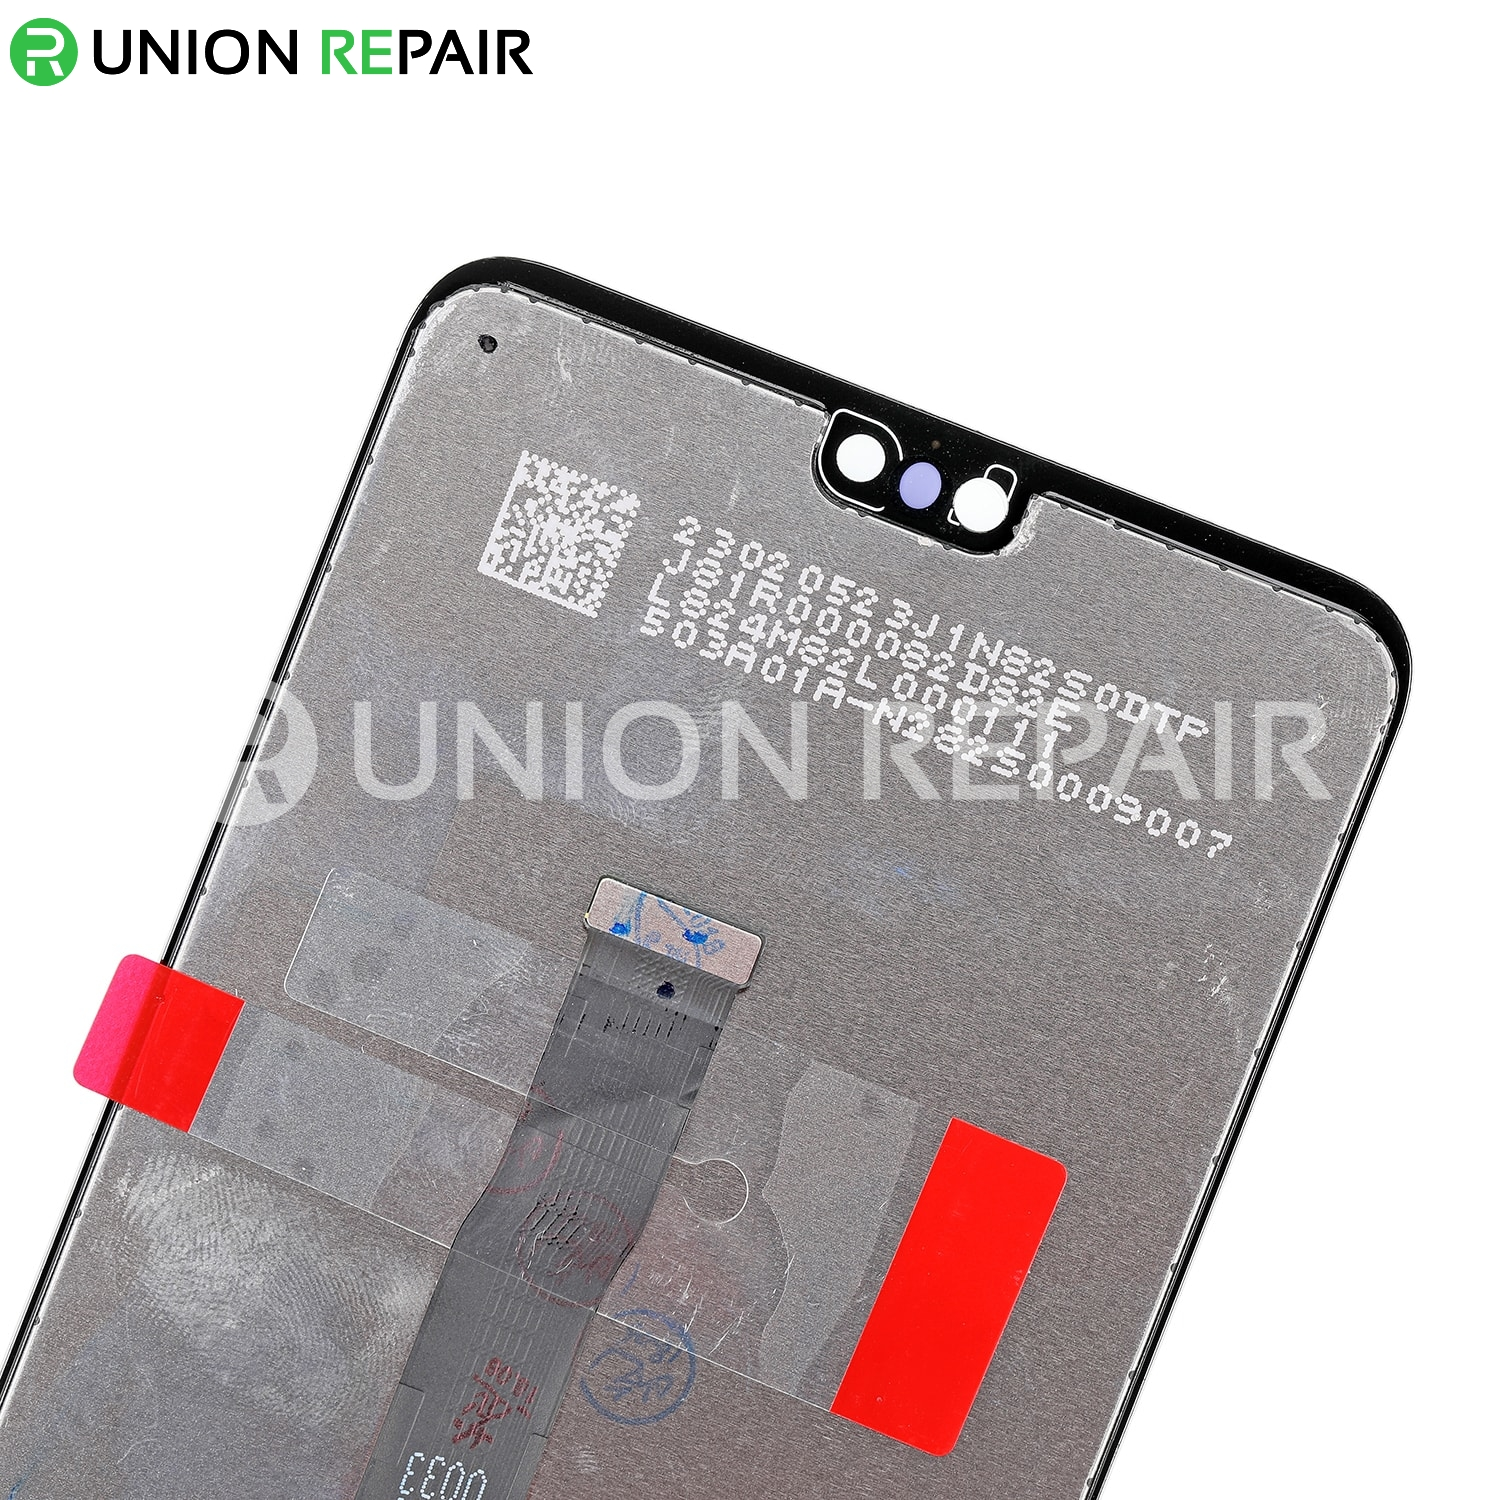 Replacement for Huawei P20 LCD with Digitizer Assembly - Black